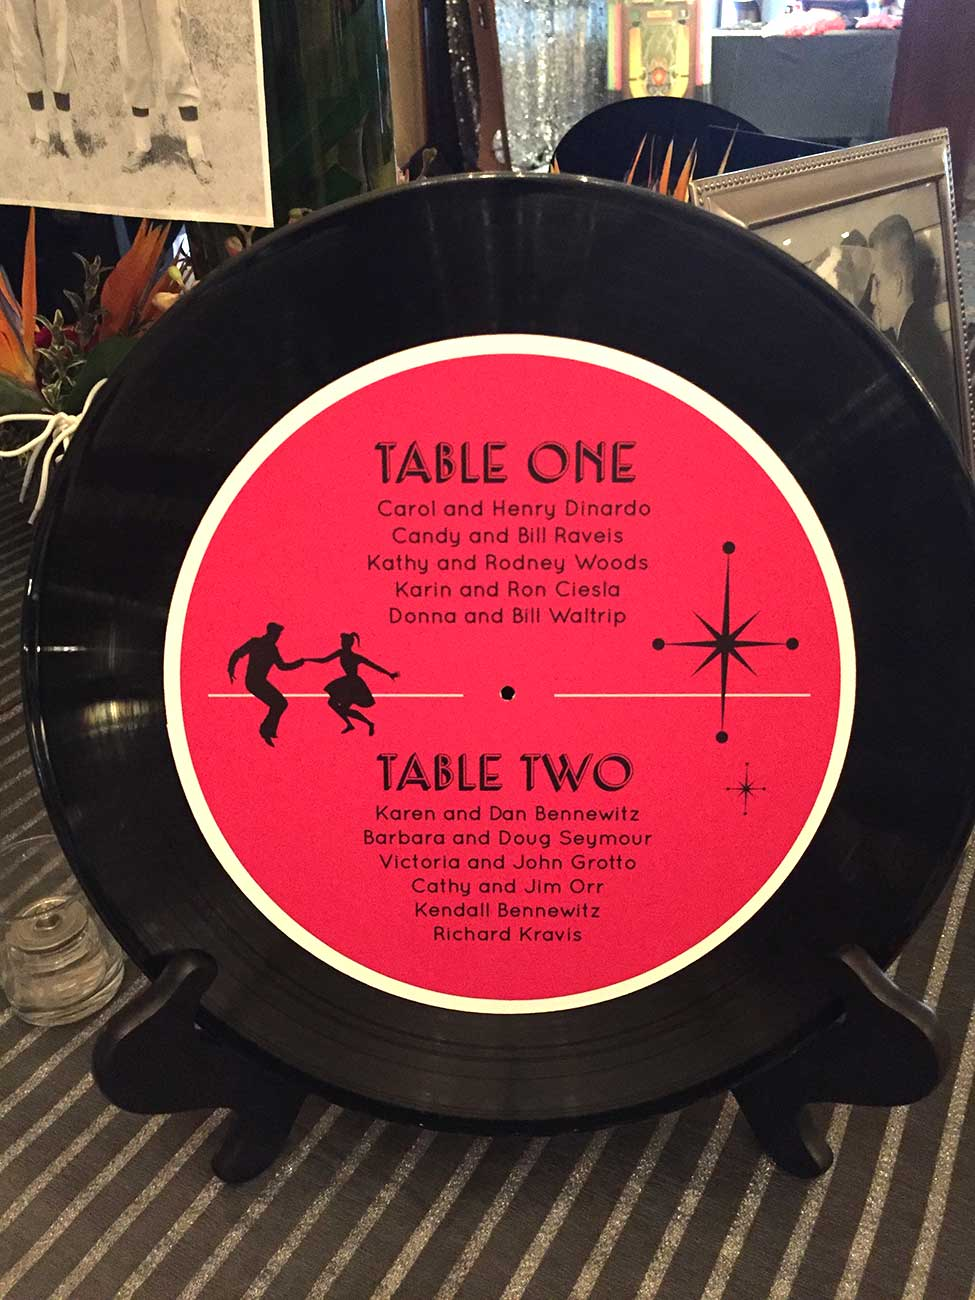 Table seating chart on a record